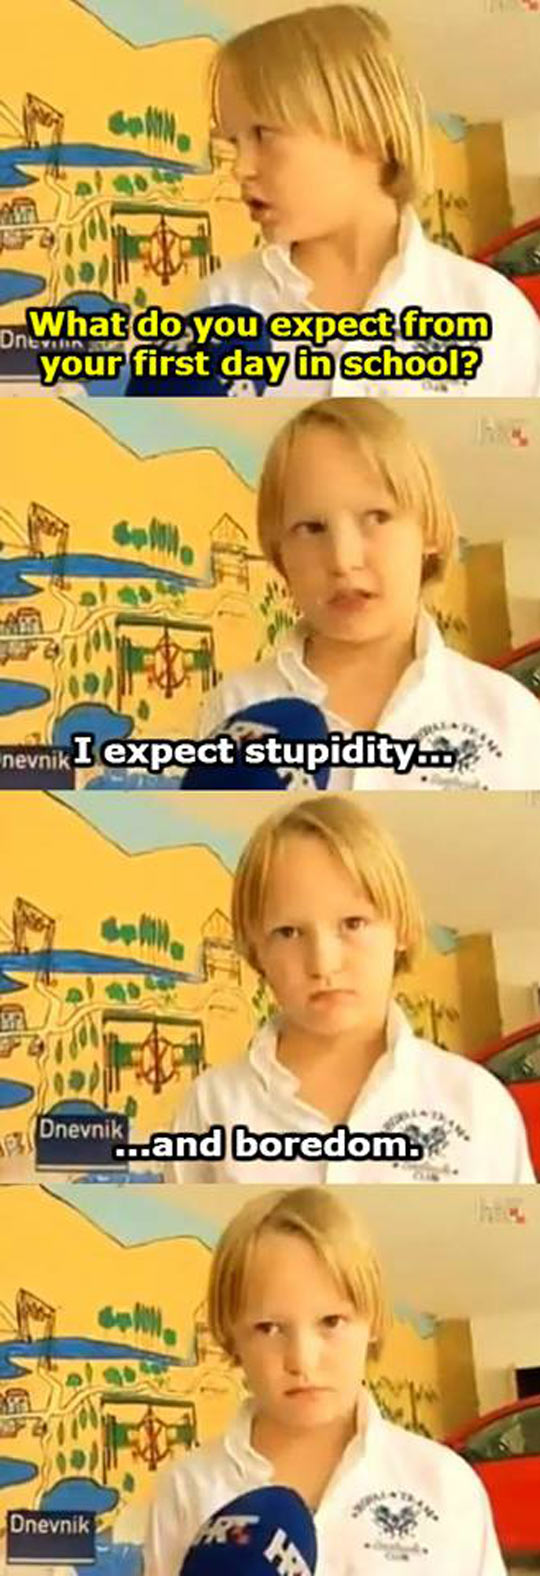 cool-interview-kid-school-first-day-expectation